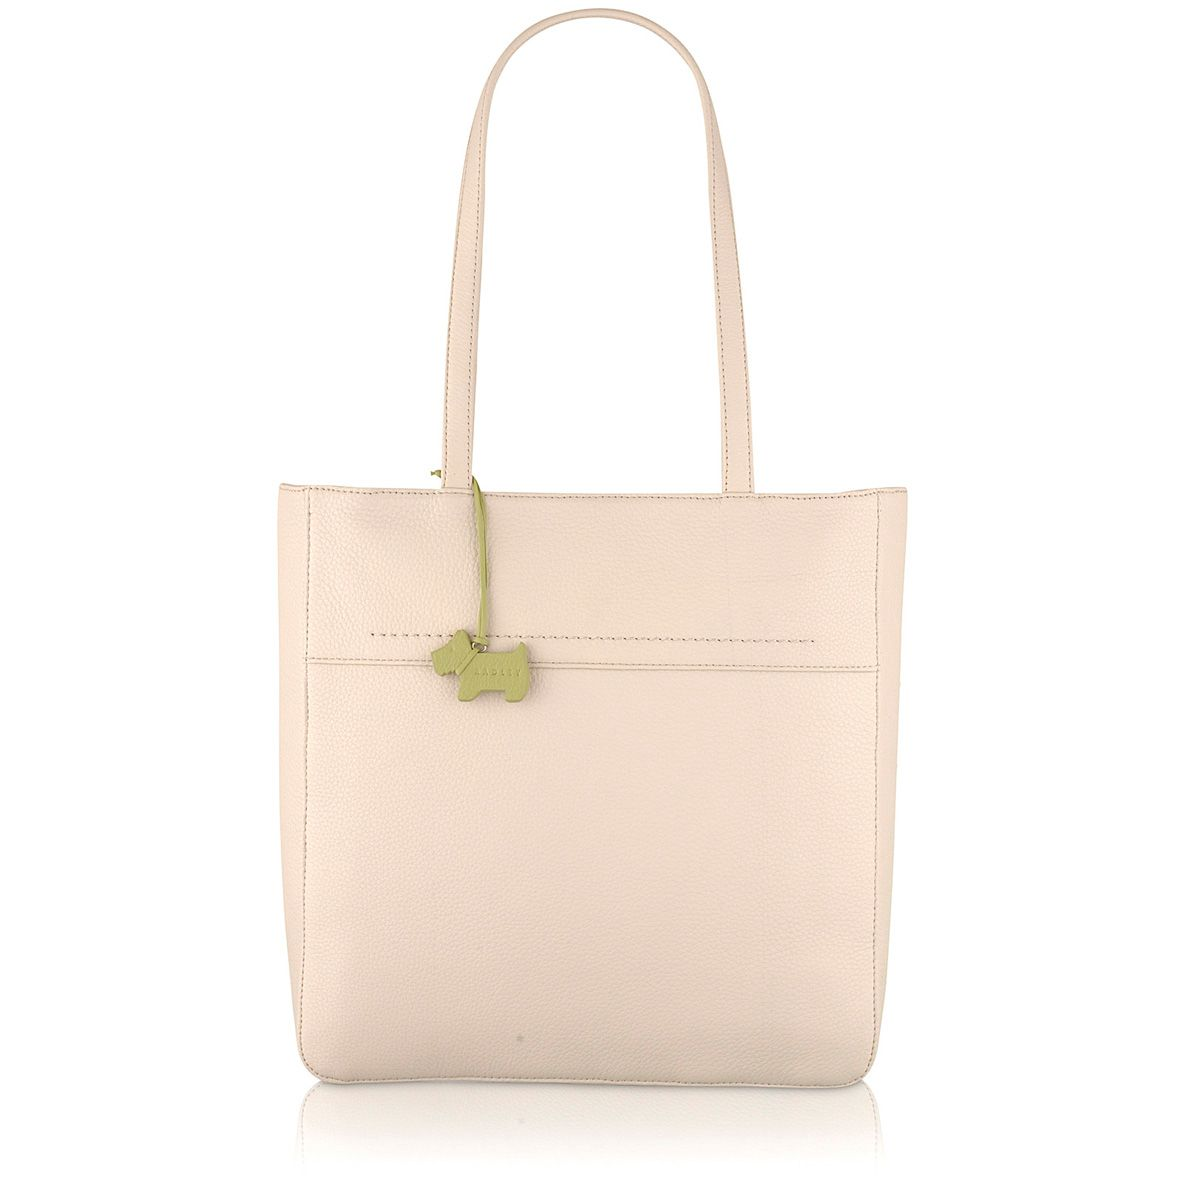 Cream large tote bag